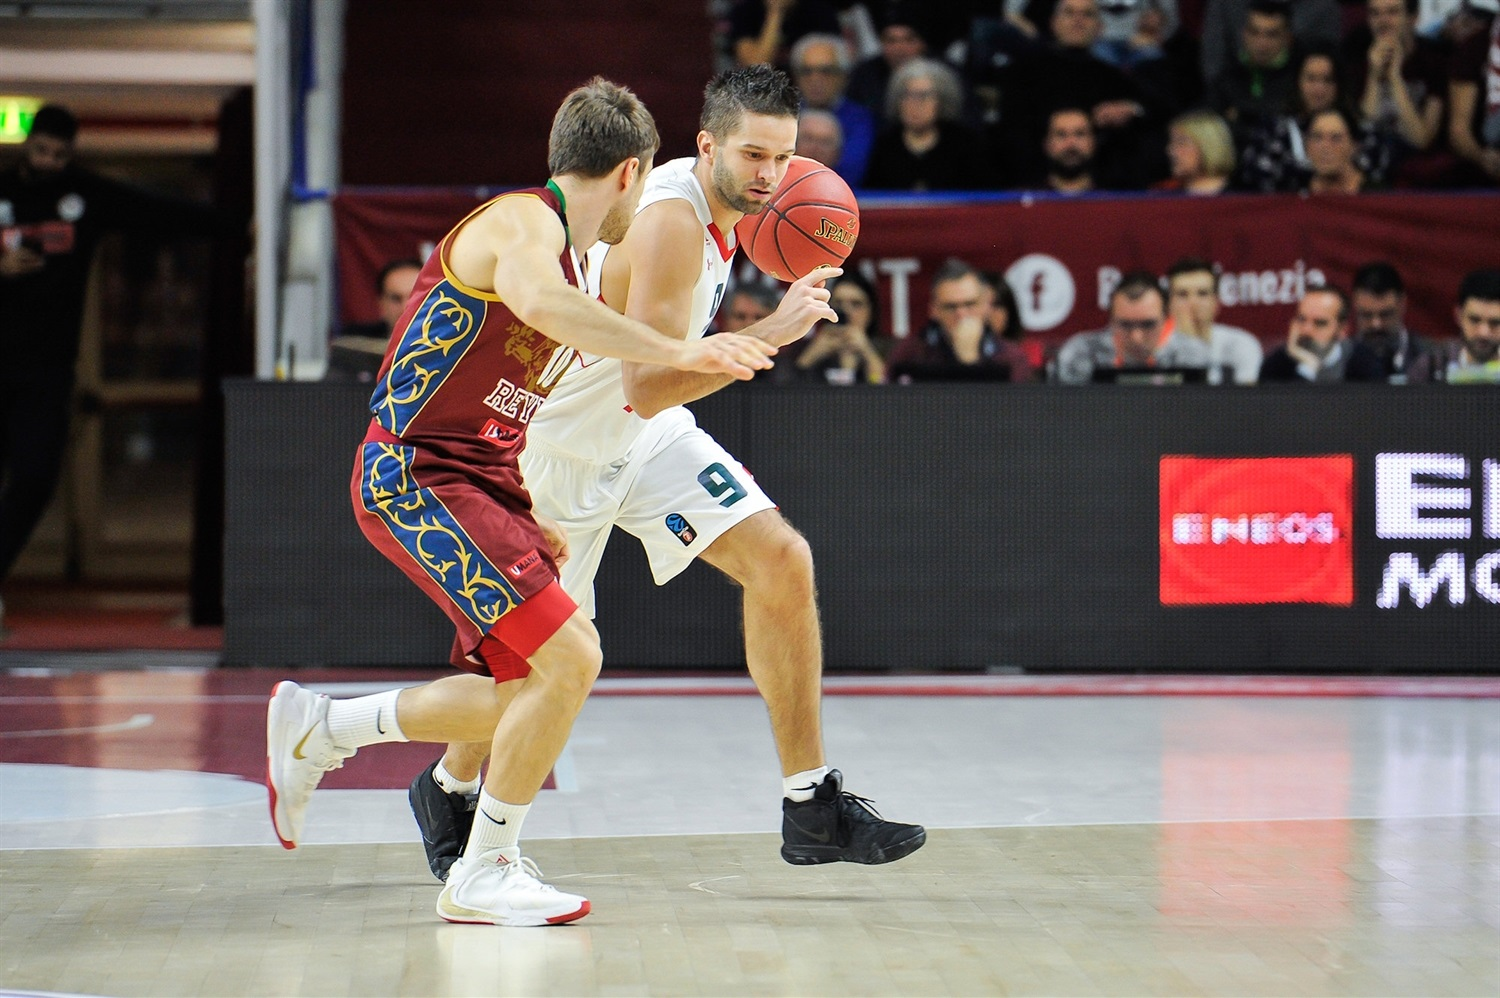 Mantas Kalnietis - Lokomotiv Kuban Krasnodar (photo Reyer) - EC19